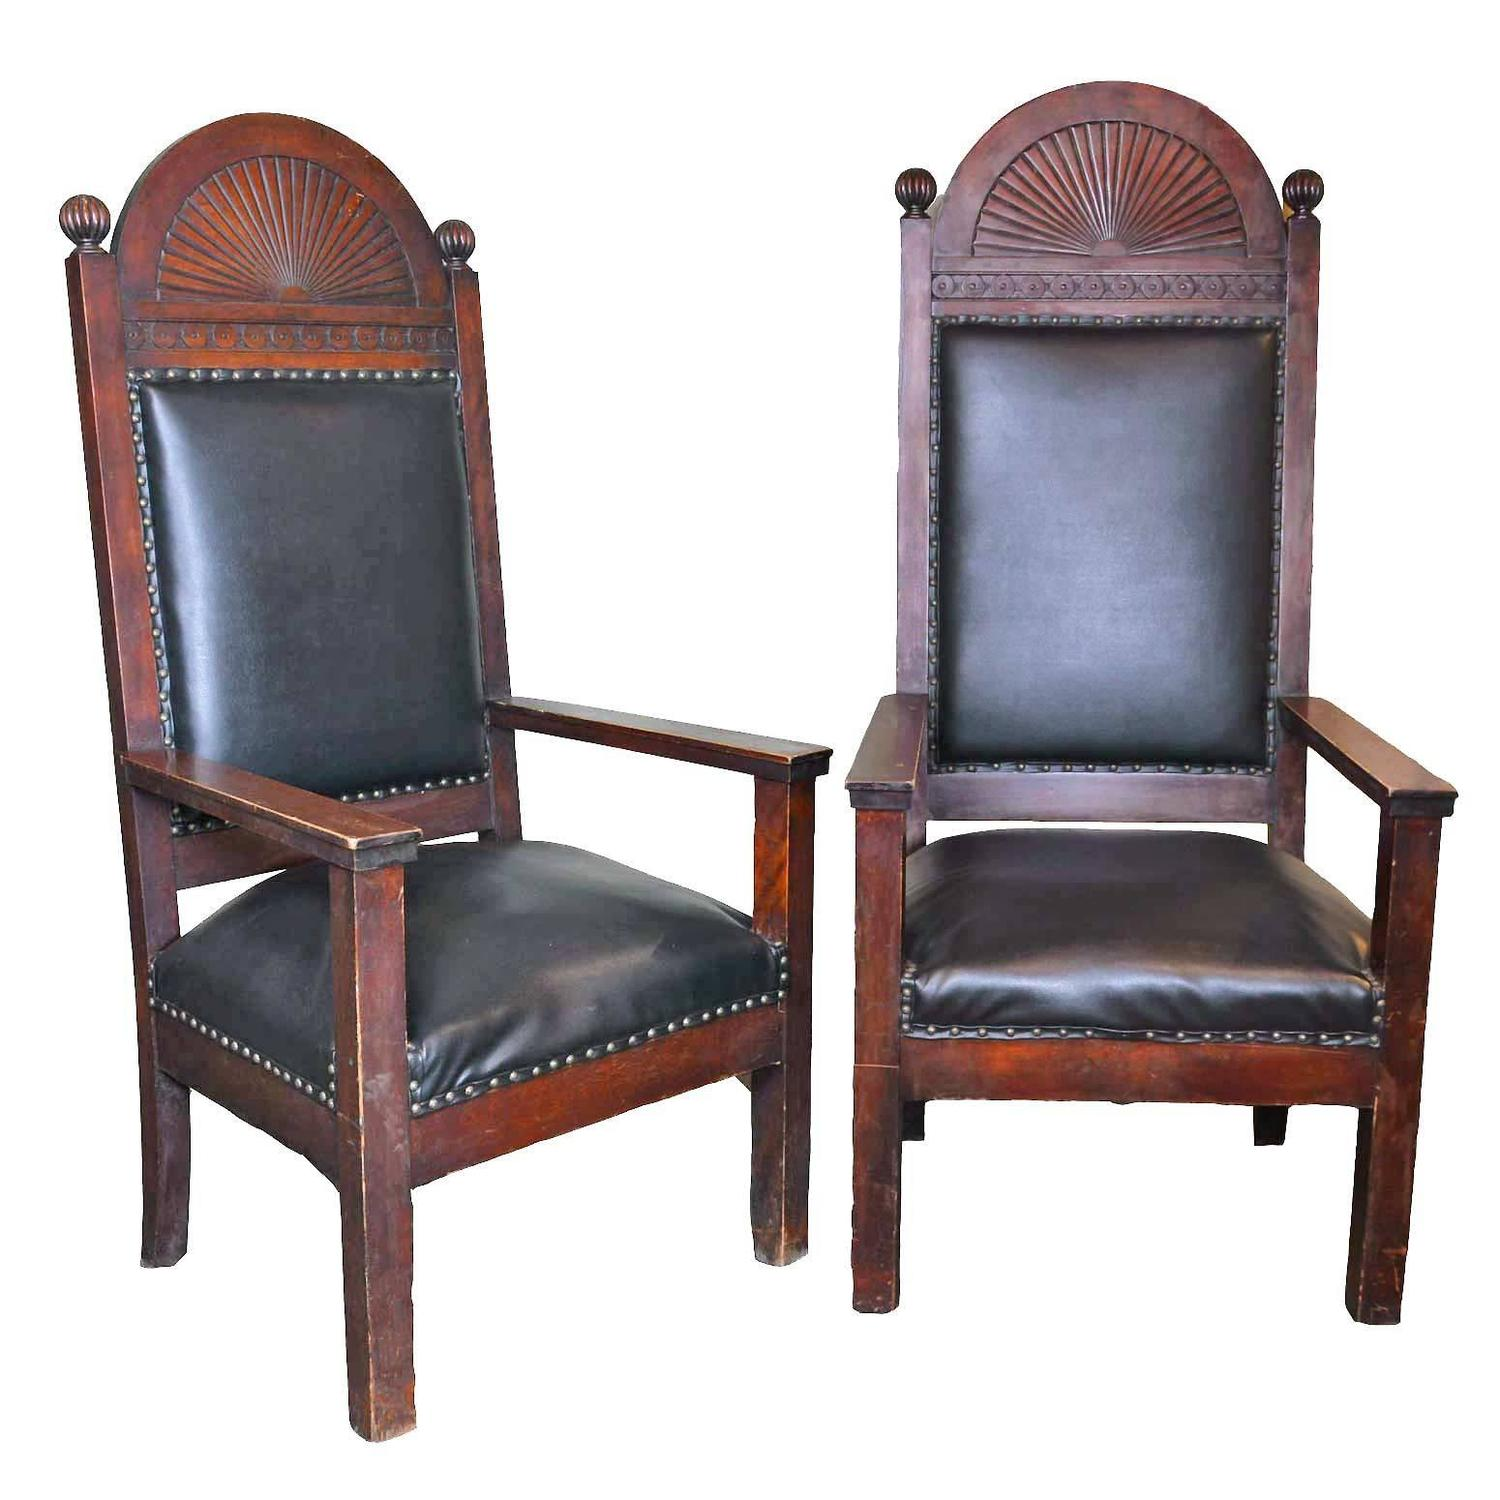 Walnut Lodge Chair With Decorative Carved Arch By Shaw Furniture Co.,  Boston, MA For Sale At 1stdibs